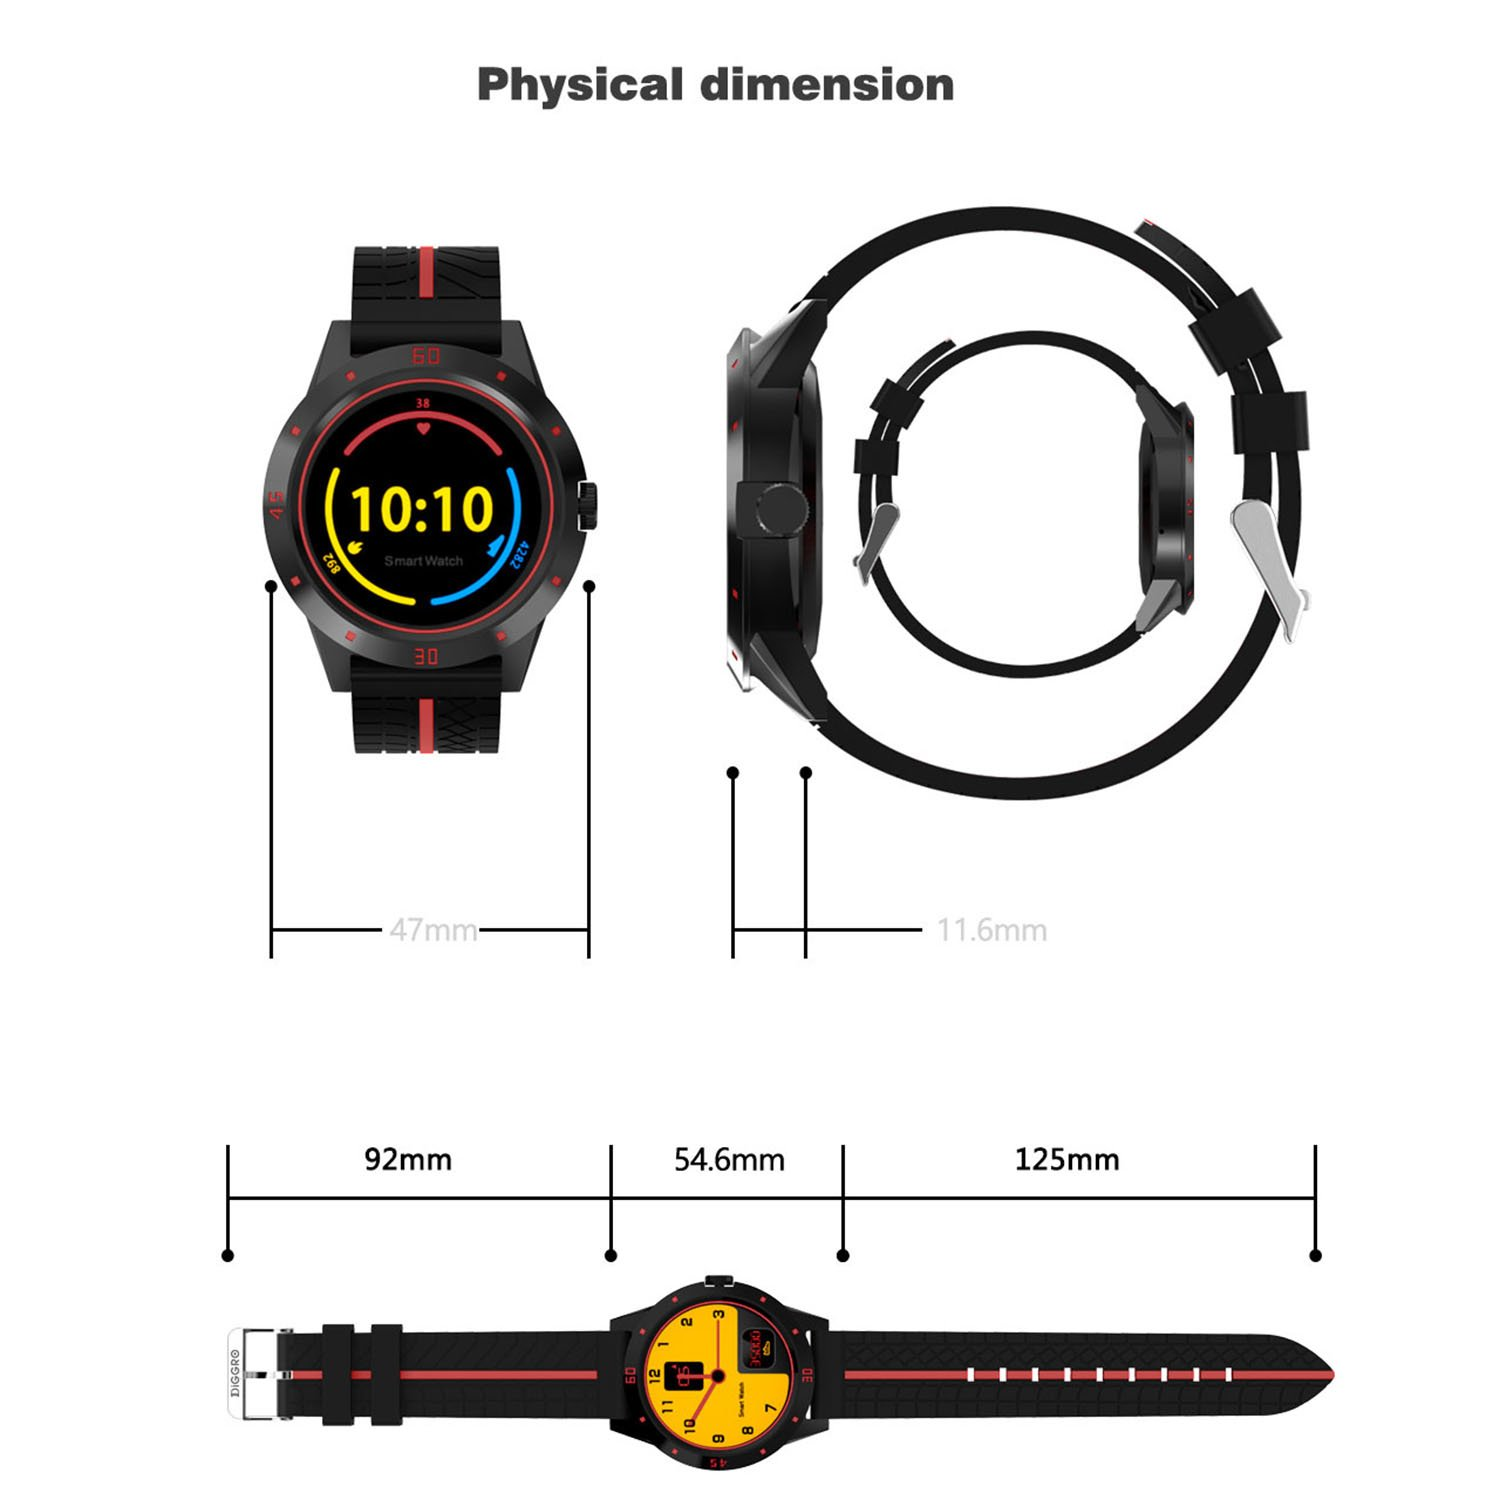 Diggro DI02 Bluetooth Smart Watch MTK2502C 128MB+64MB Microphone Speaker Siri Support Heart Rate Monitor Sport Pedometer Sedentary Reminder Sleeping Monitor Two-way Anti-Lost for Android&iOS